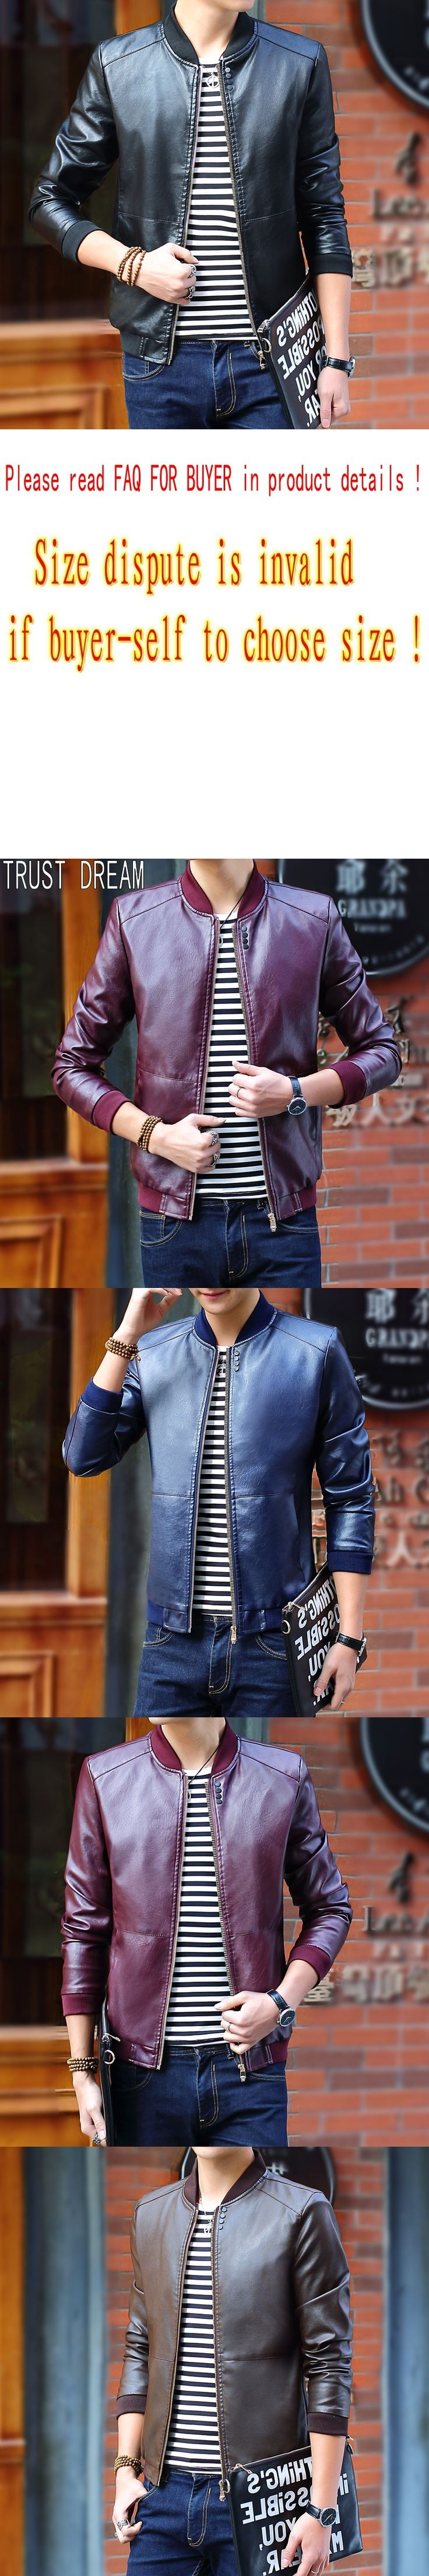 TRUST DREAM Europeans Fashion Men Leather Jackets Men's Solid Jacket Man PU Jacket jaqueta de couro masculina Plus Size